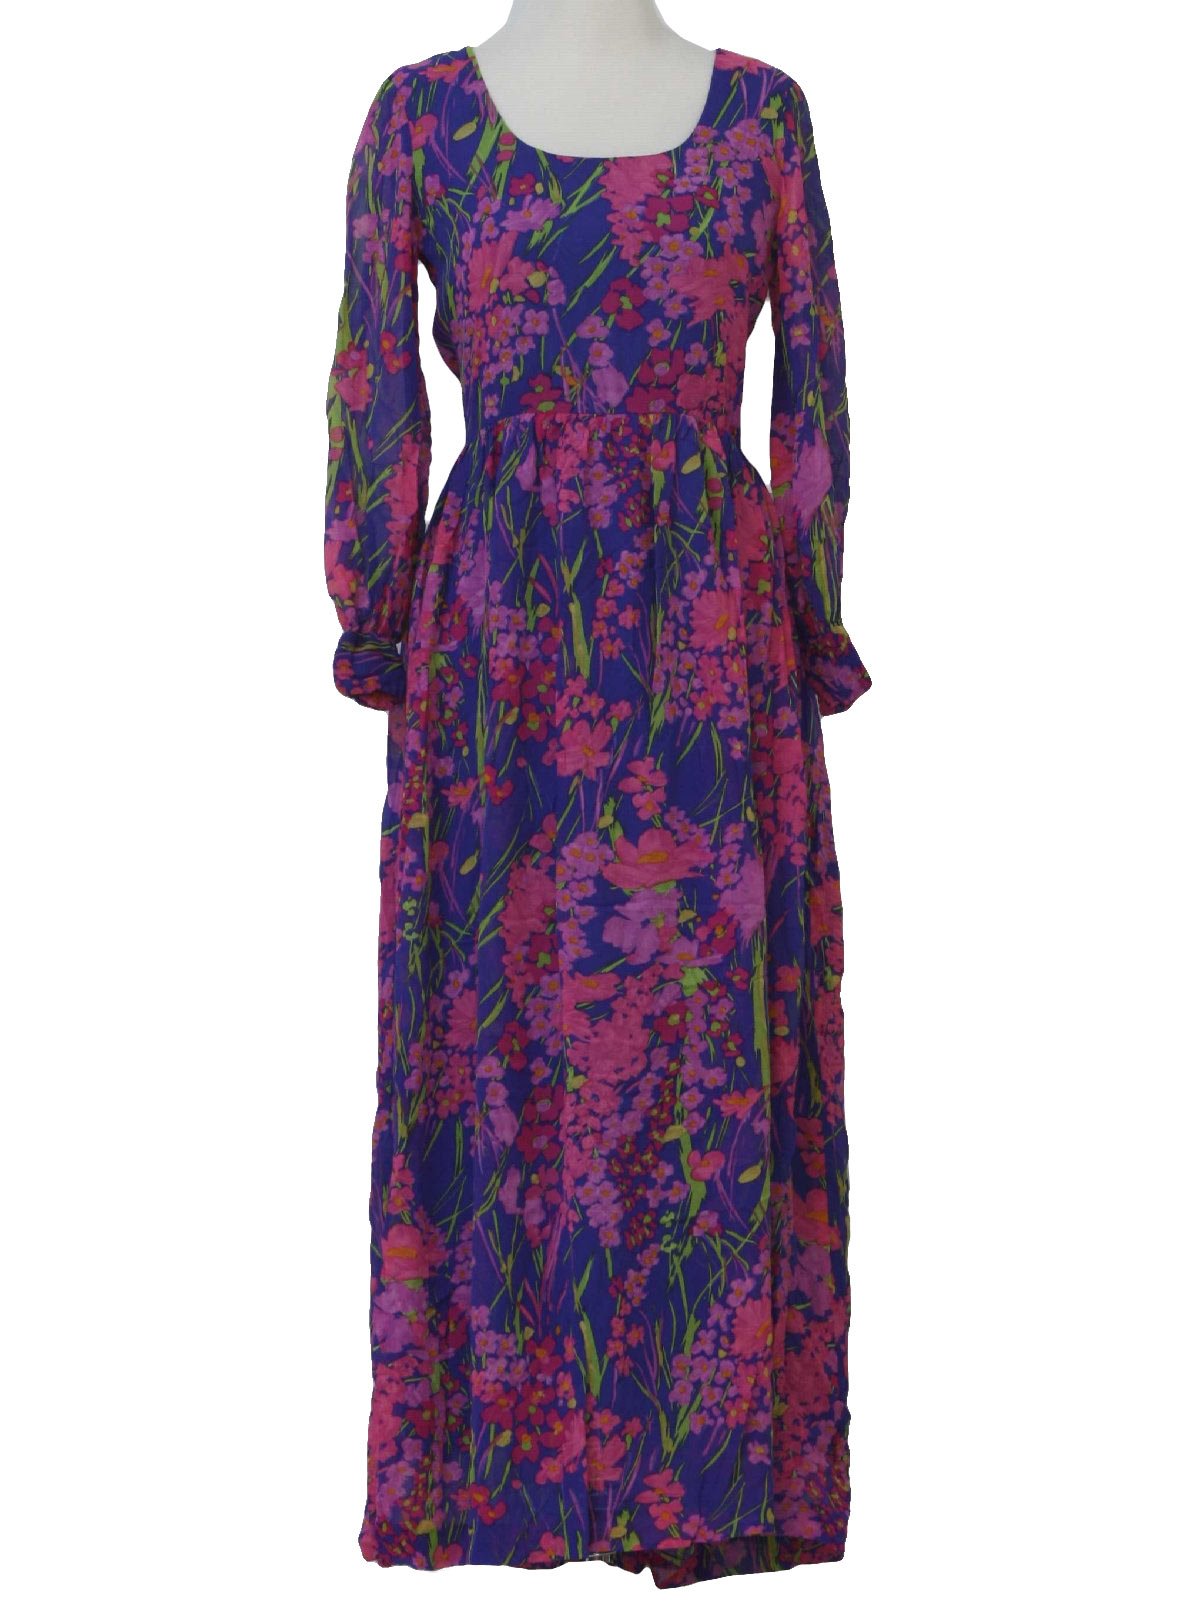 Vintage 60s Hippie Dress Late 60s Or Early 70s Saks